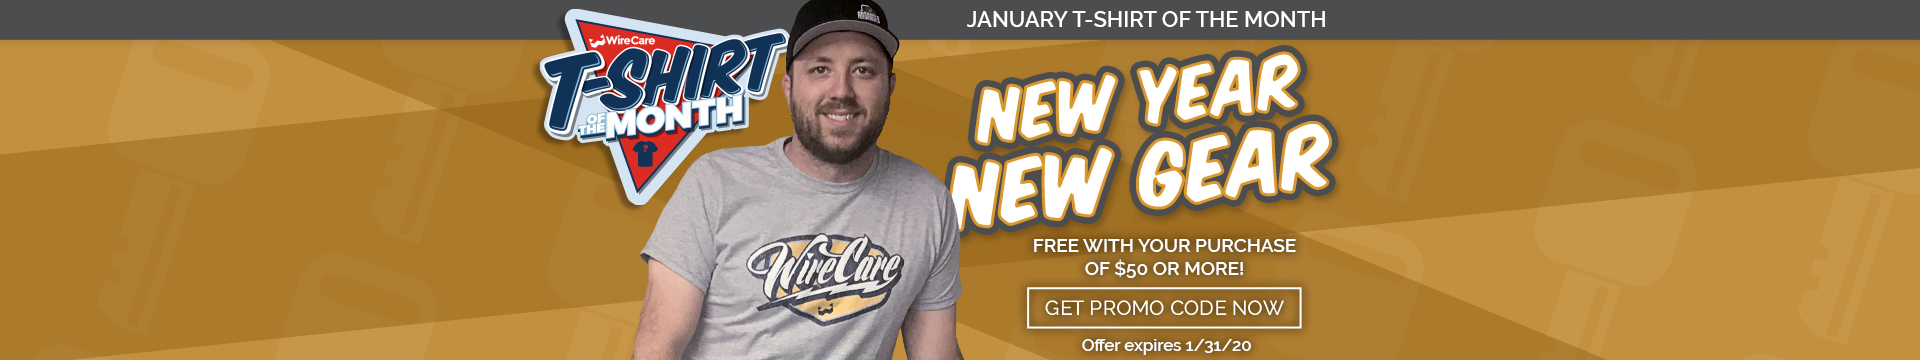 January 2020 Tshirt of the Month